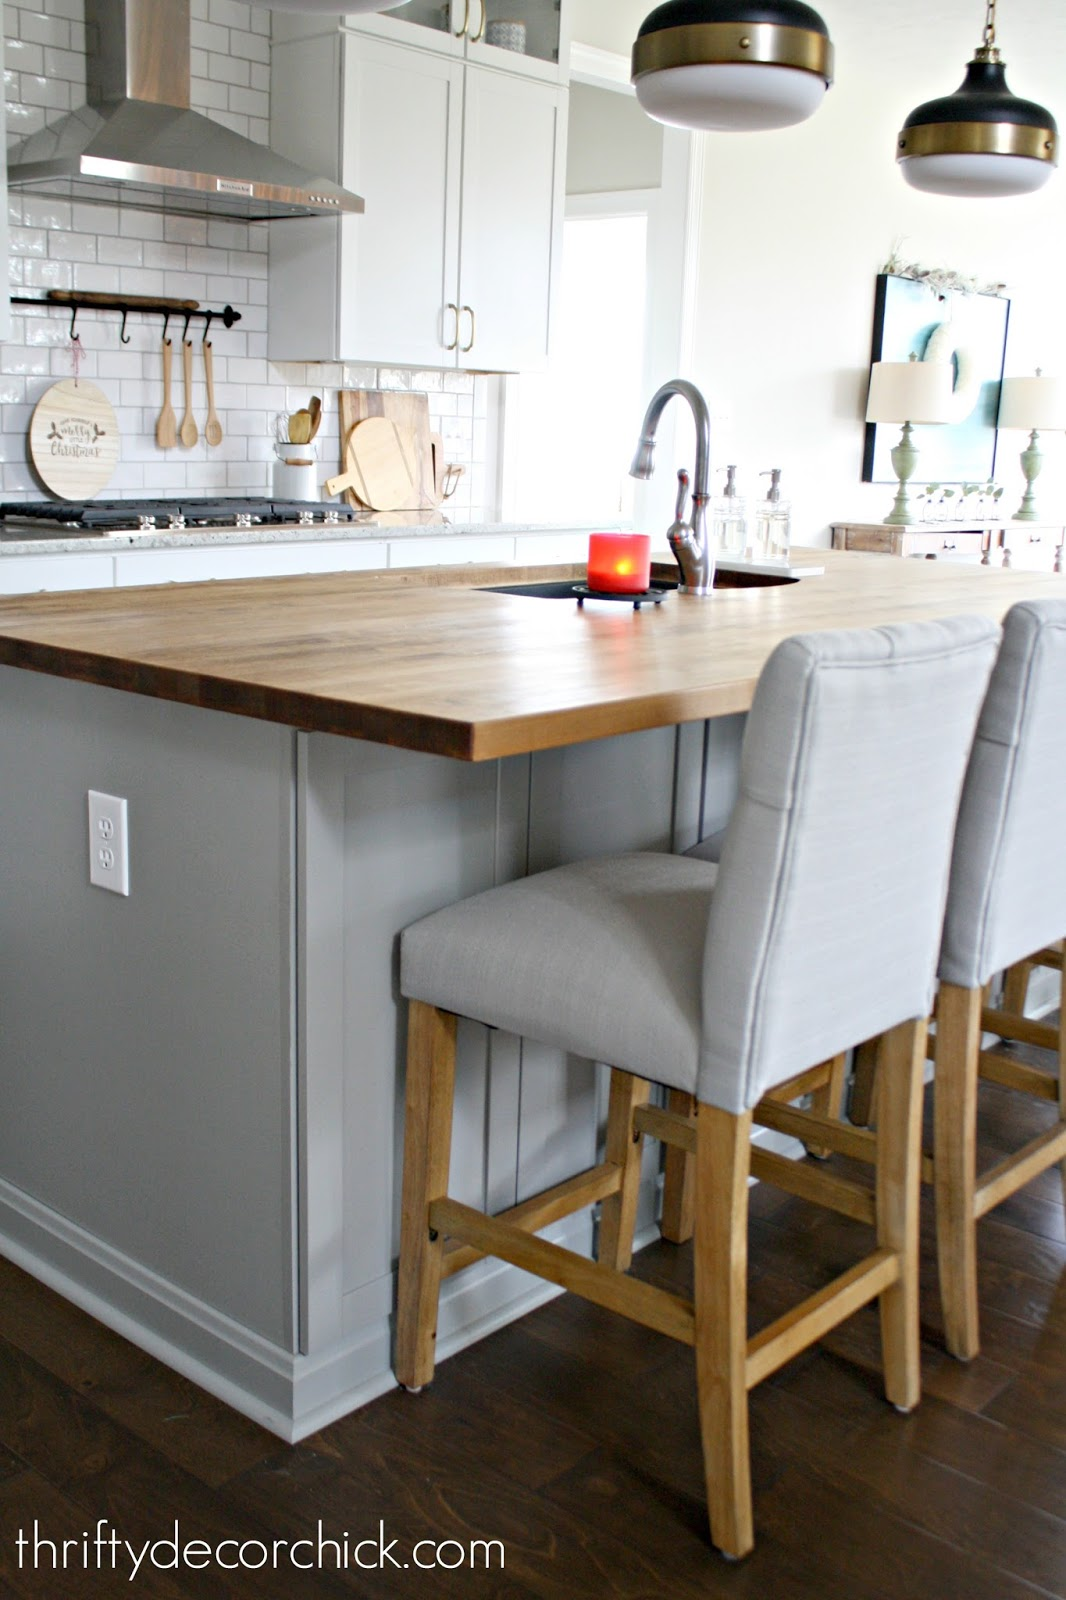 How To Stain And Treat Wood Countertops